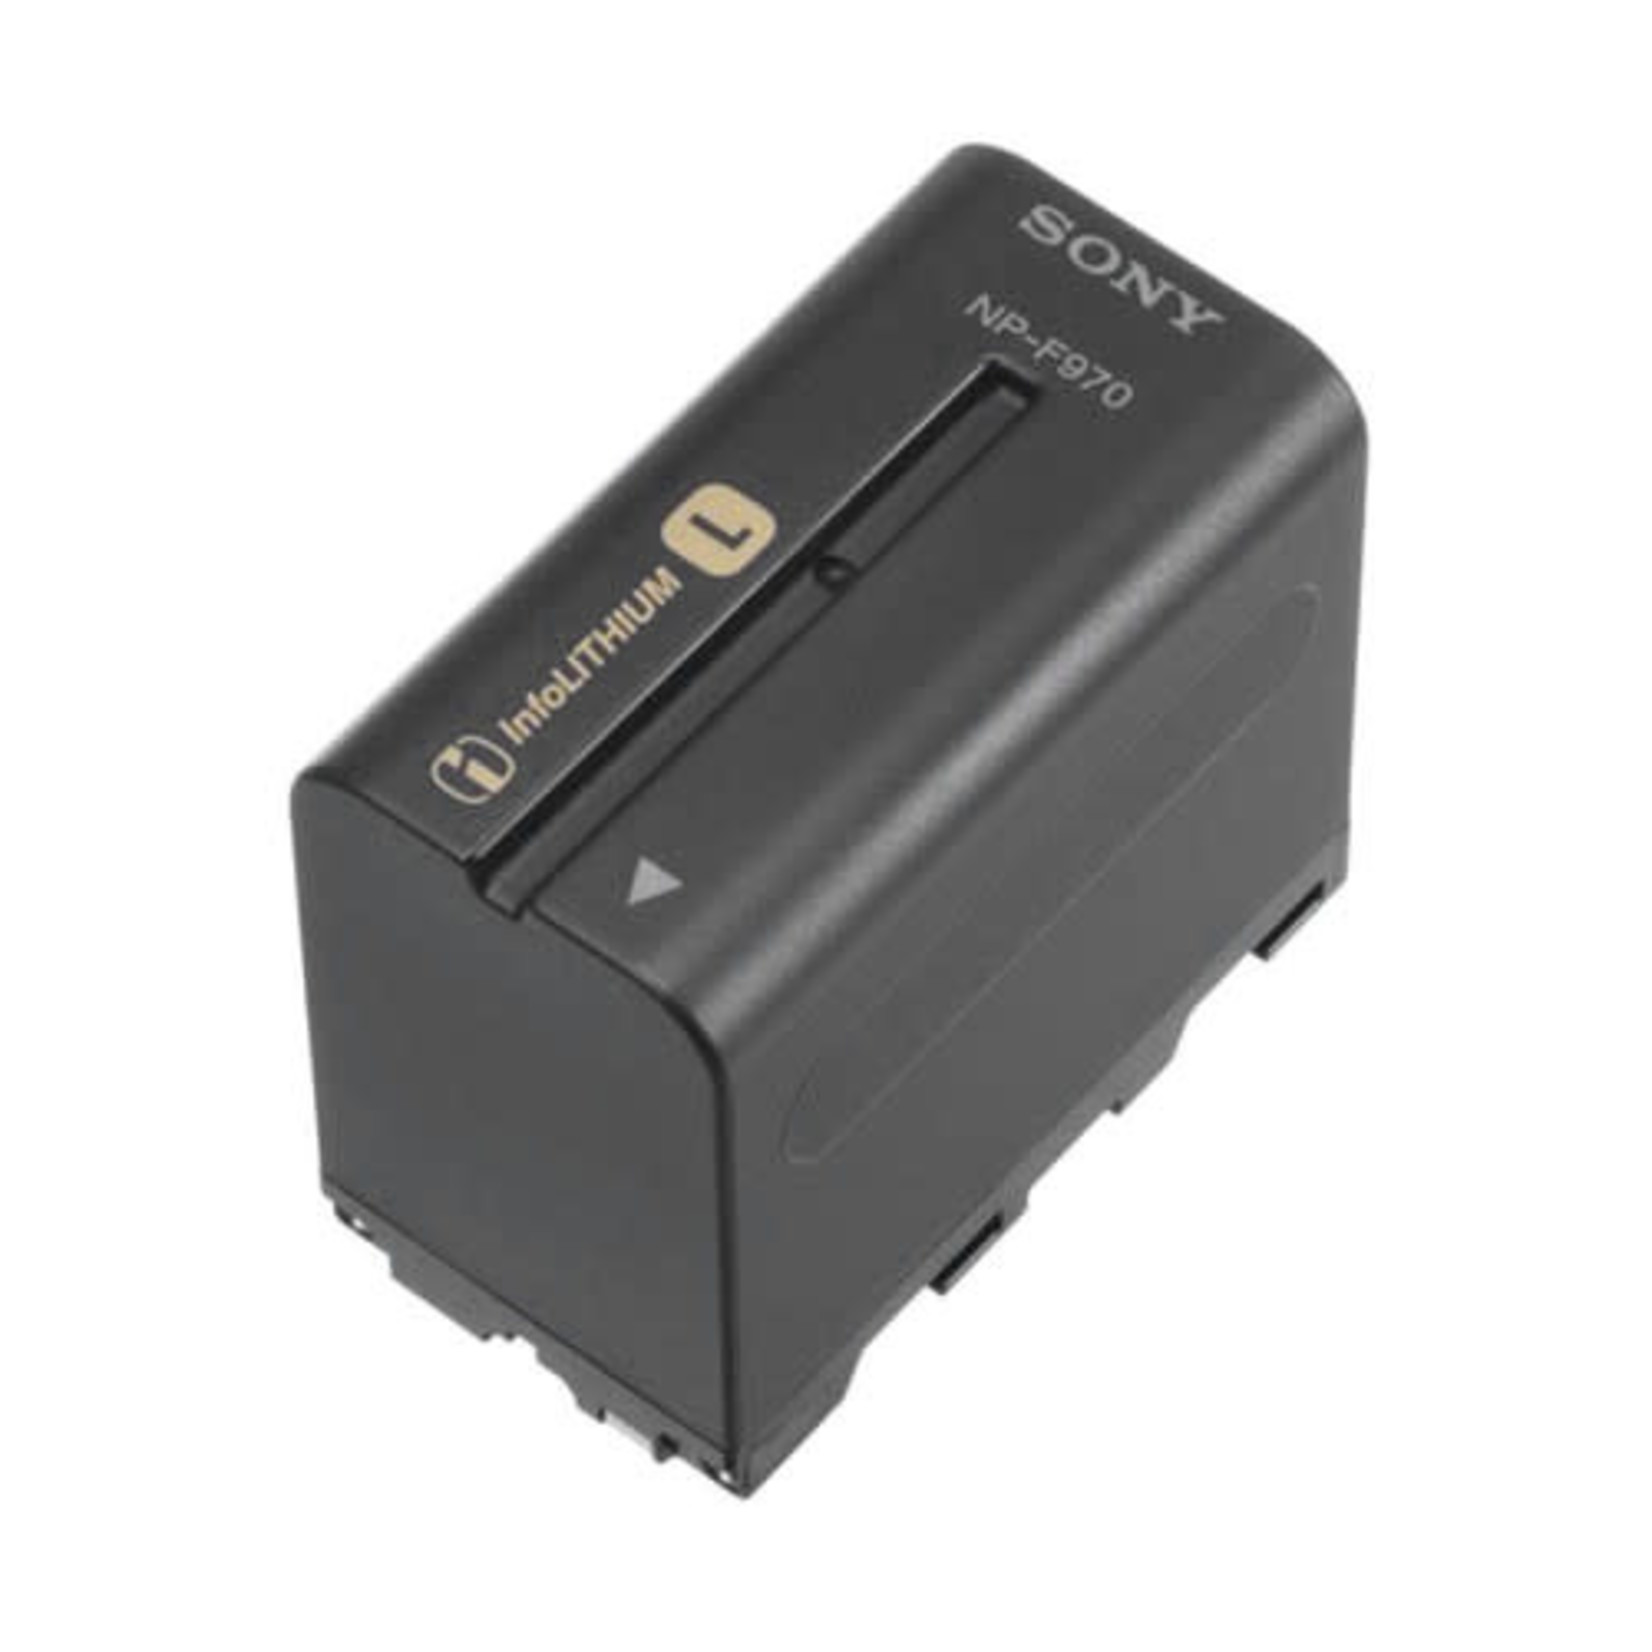 Sony Sony NP-F970 L-Series Info-Lithium Battery Pack